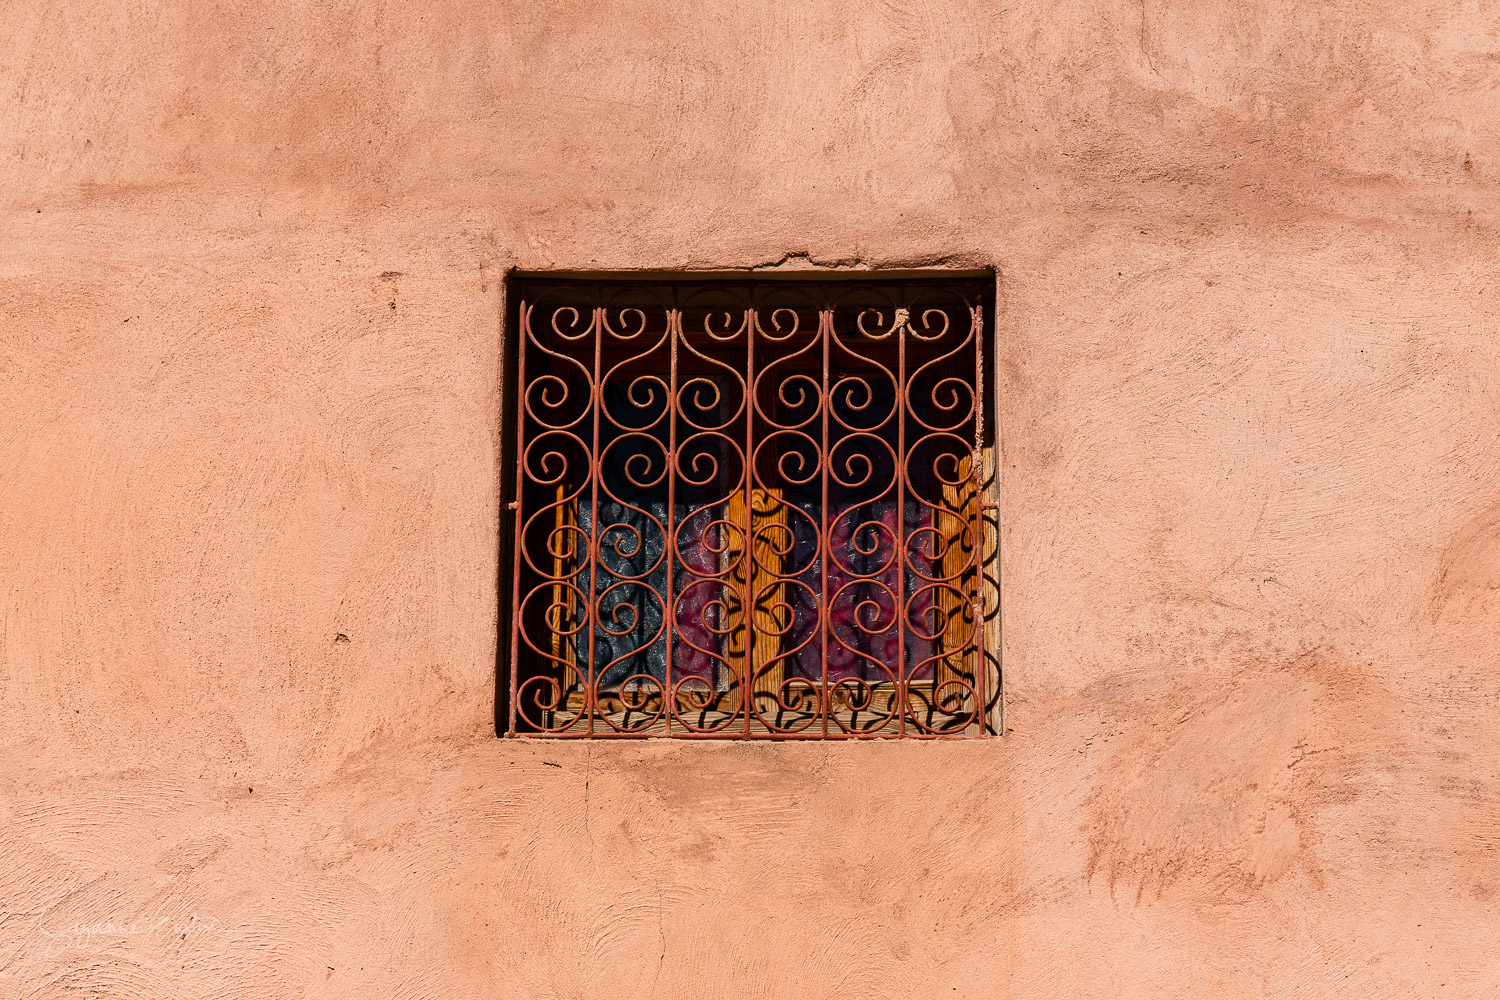 Windows and doors in Marrakech are all unique and ornate